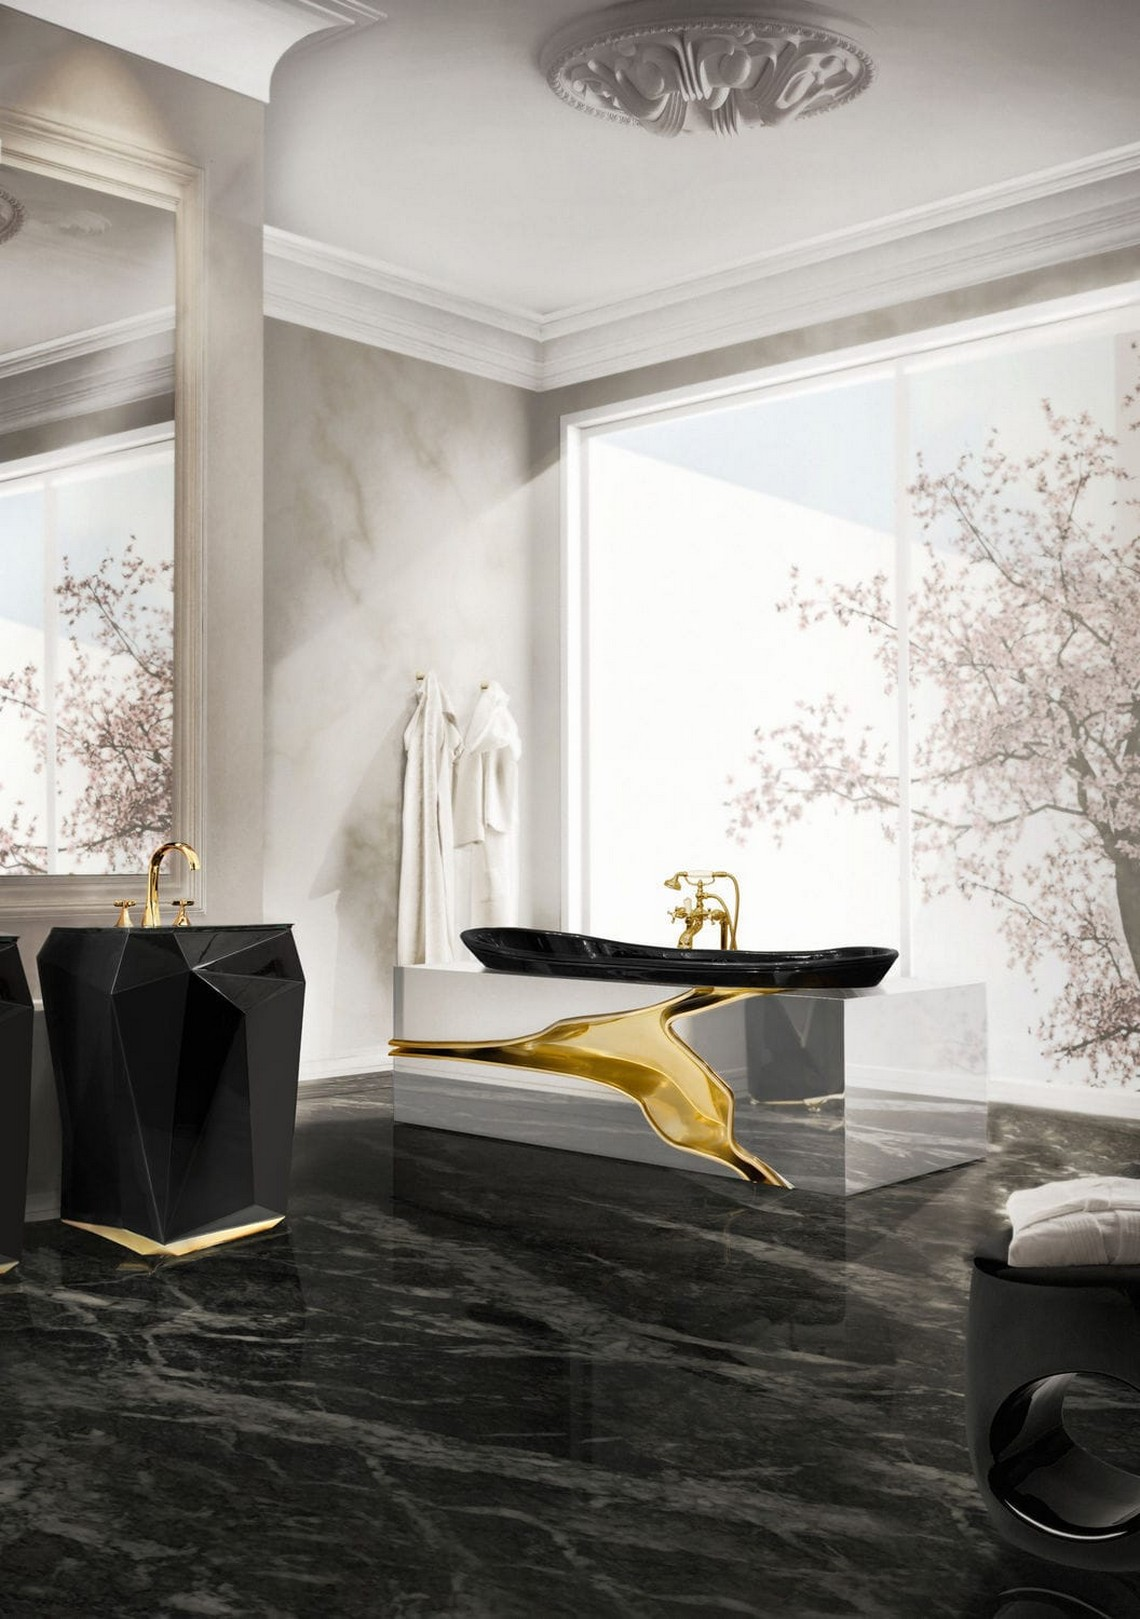 Top Pieces For Luxury Bathrooms luxury bathrooms Top Pieces For Luxury Bathrooms lapiaz2